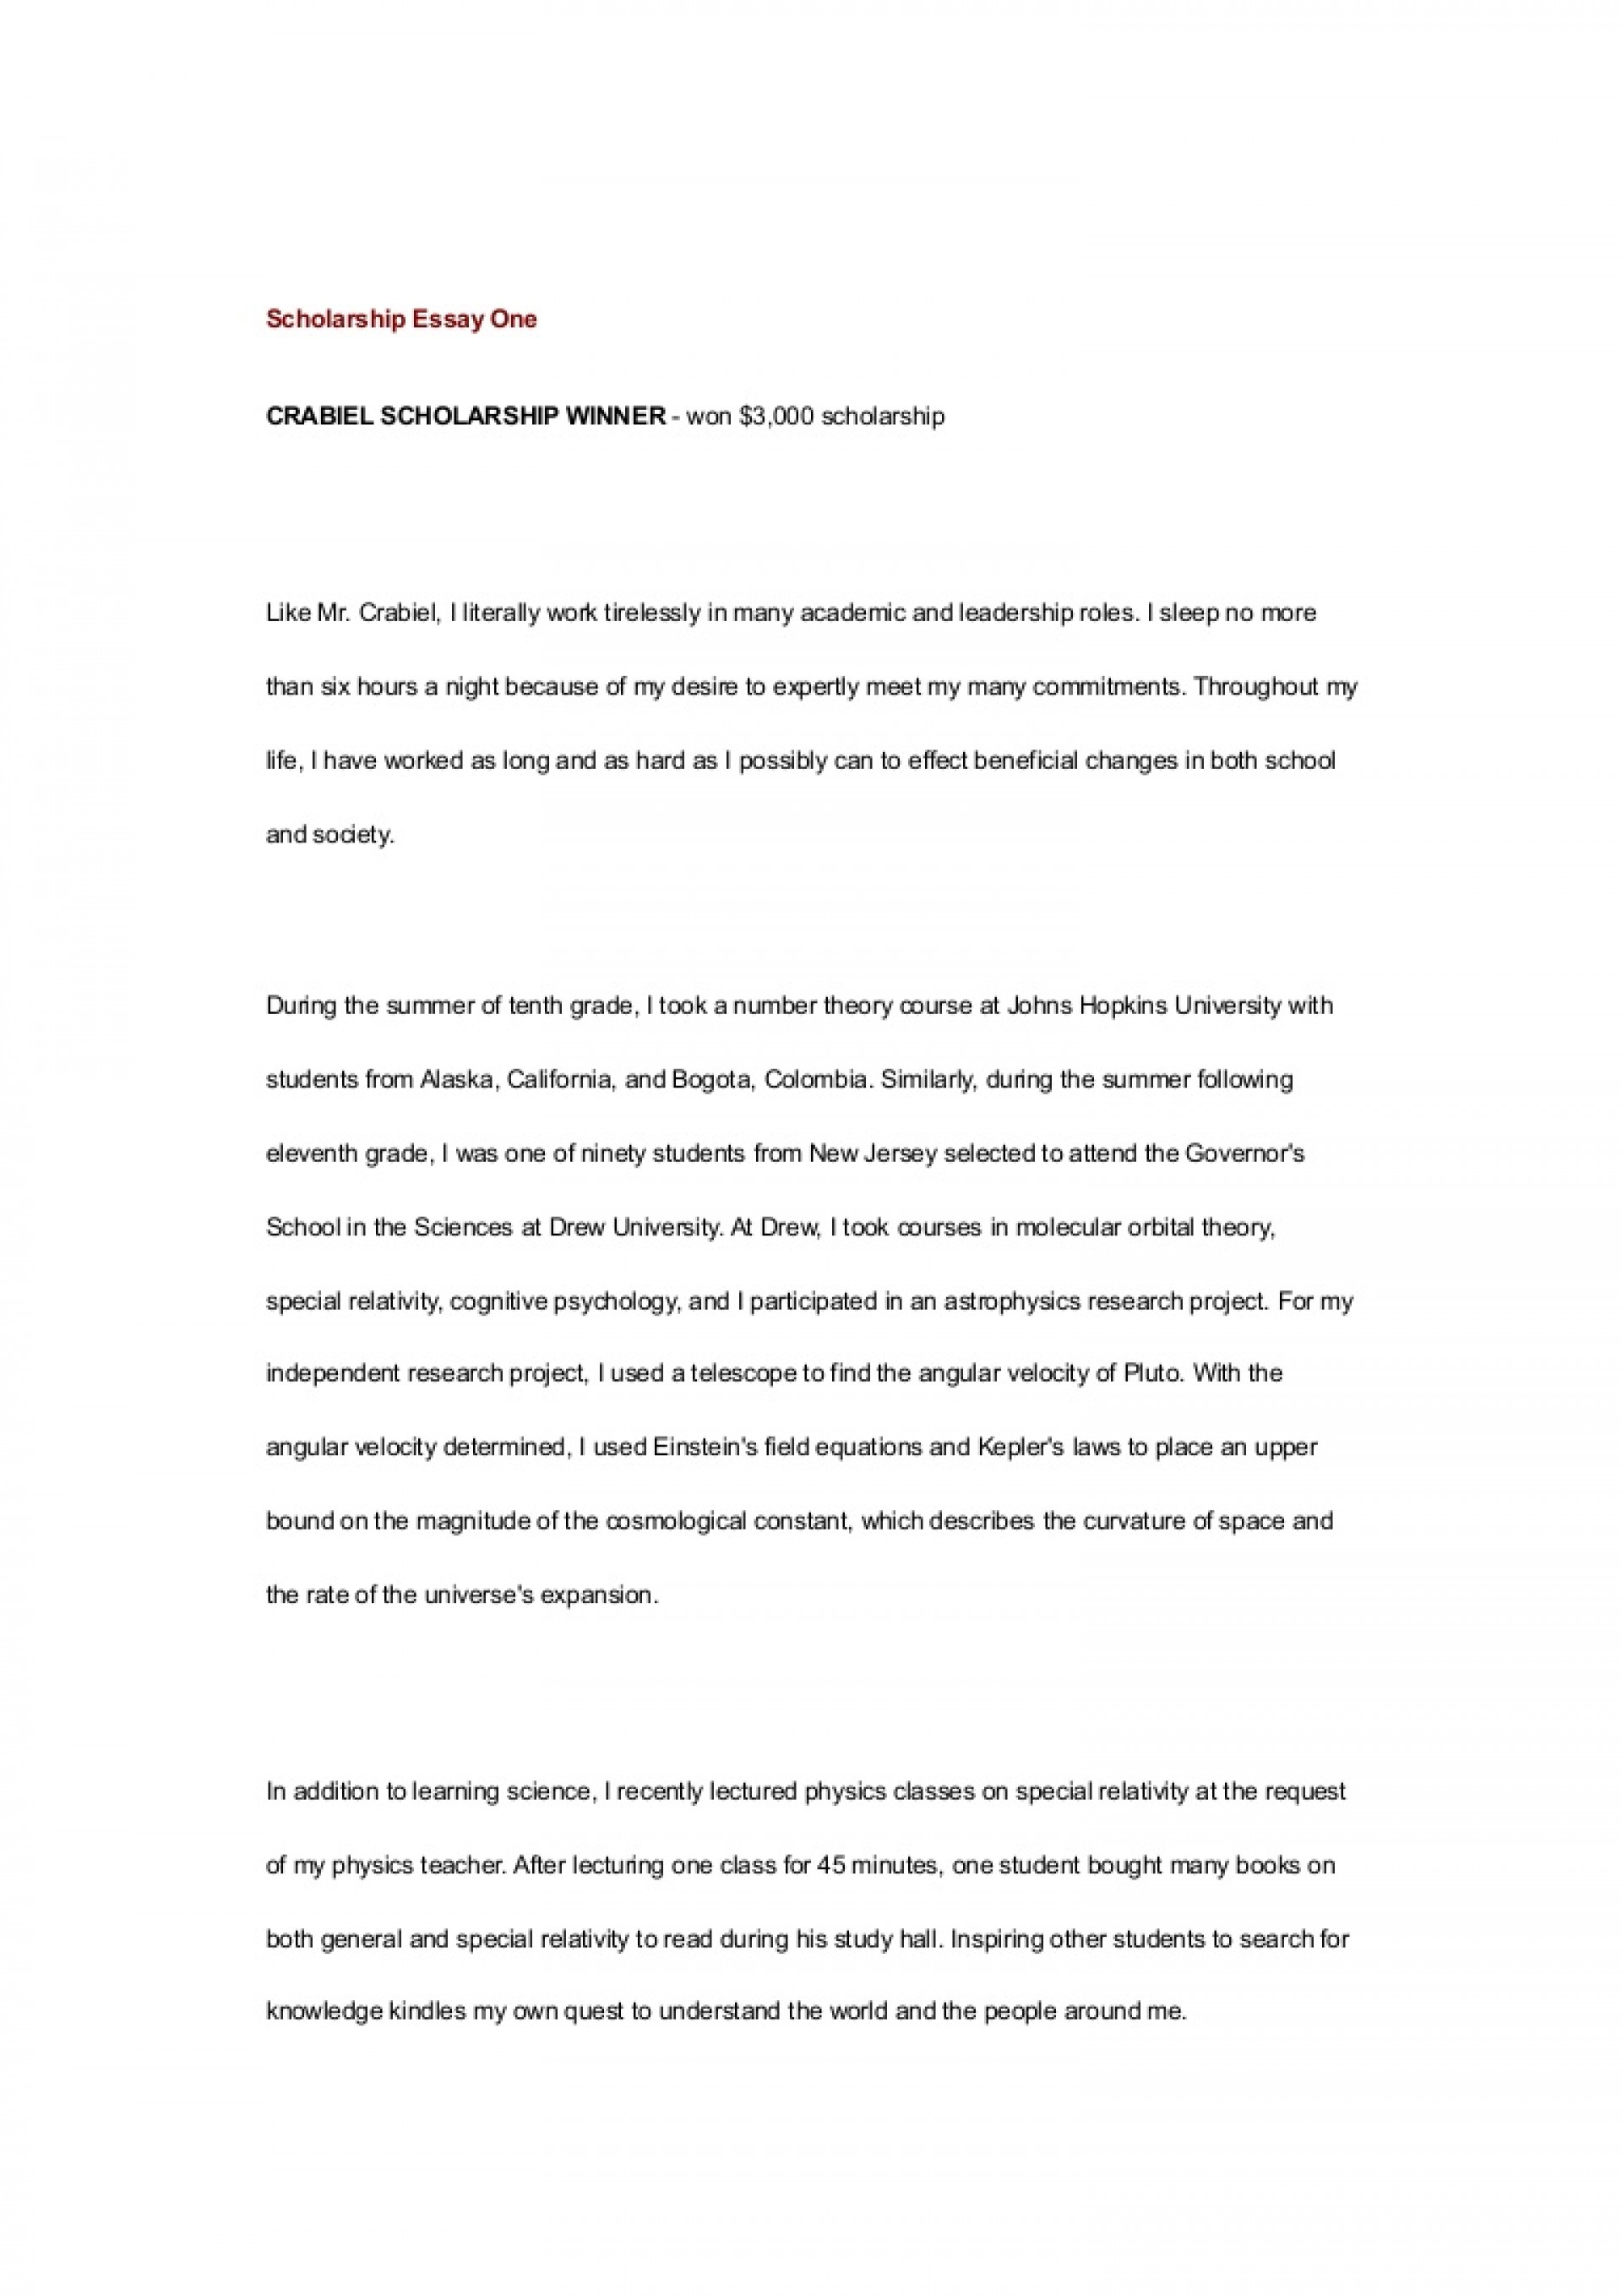 005 Scholarship Essay Examples Example Scholarshipessayone Phpapp01 Thumbnail Impressive Financial Need Pdf Nursing 1920